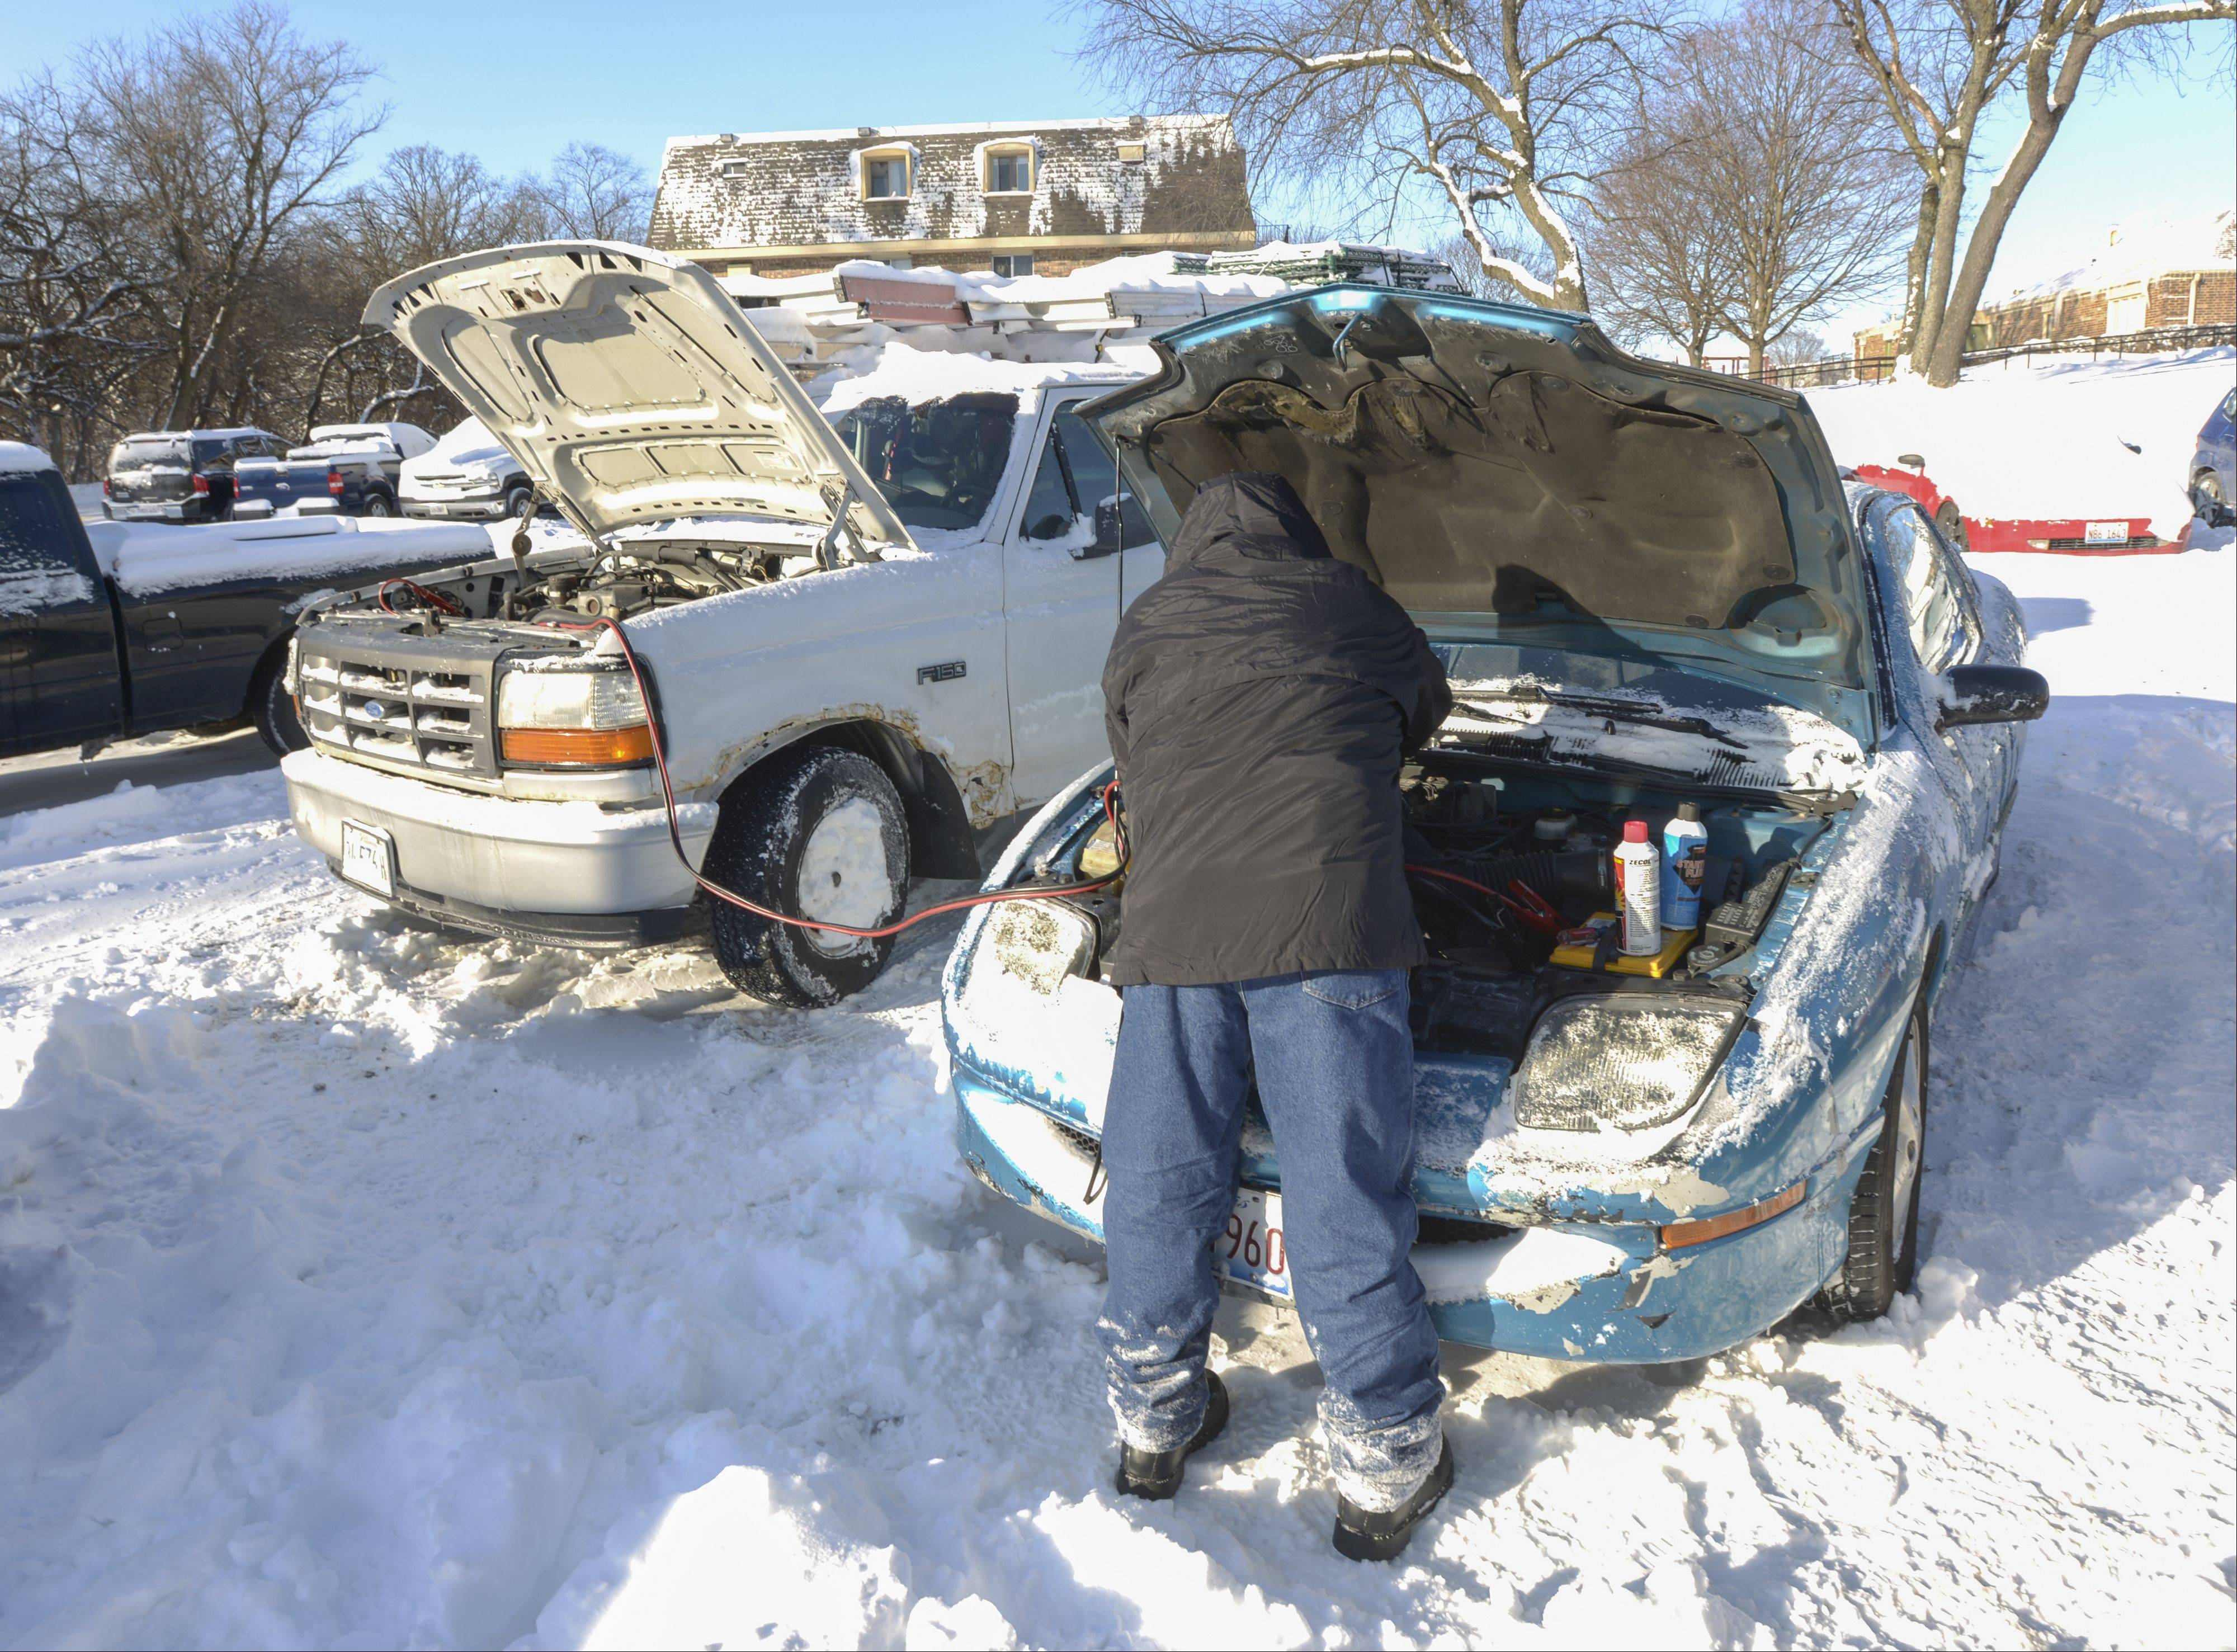 Daily Herald File PhotoFollow our advice to avoid that painful battery jump-start in freezing weather.